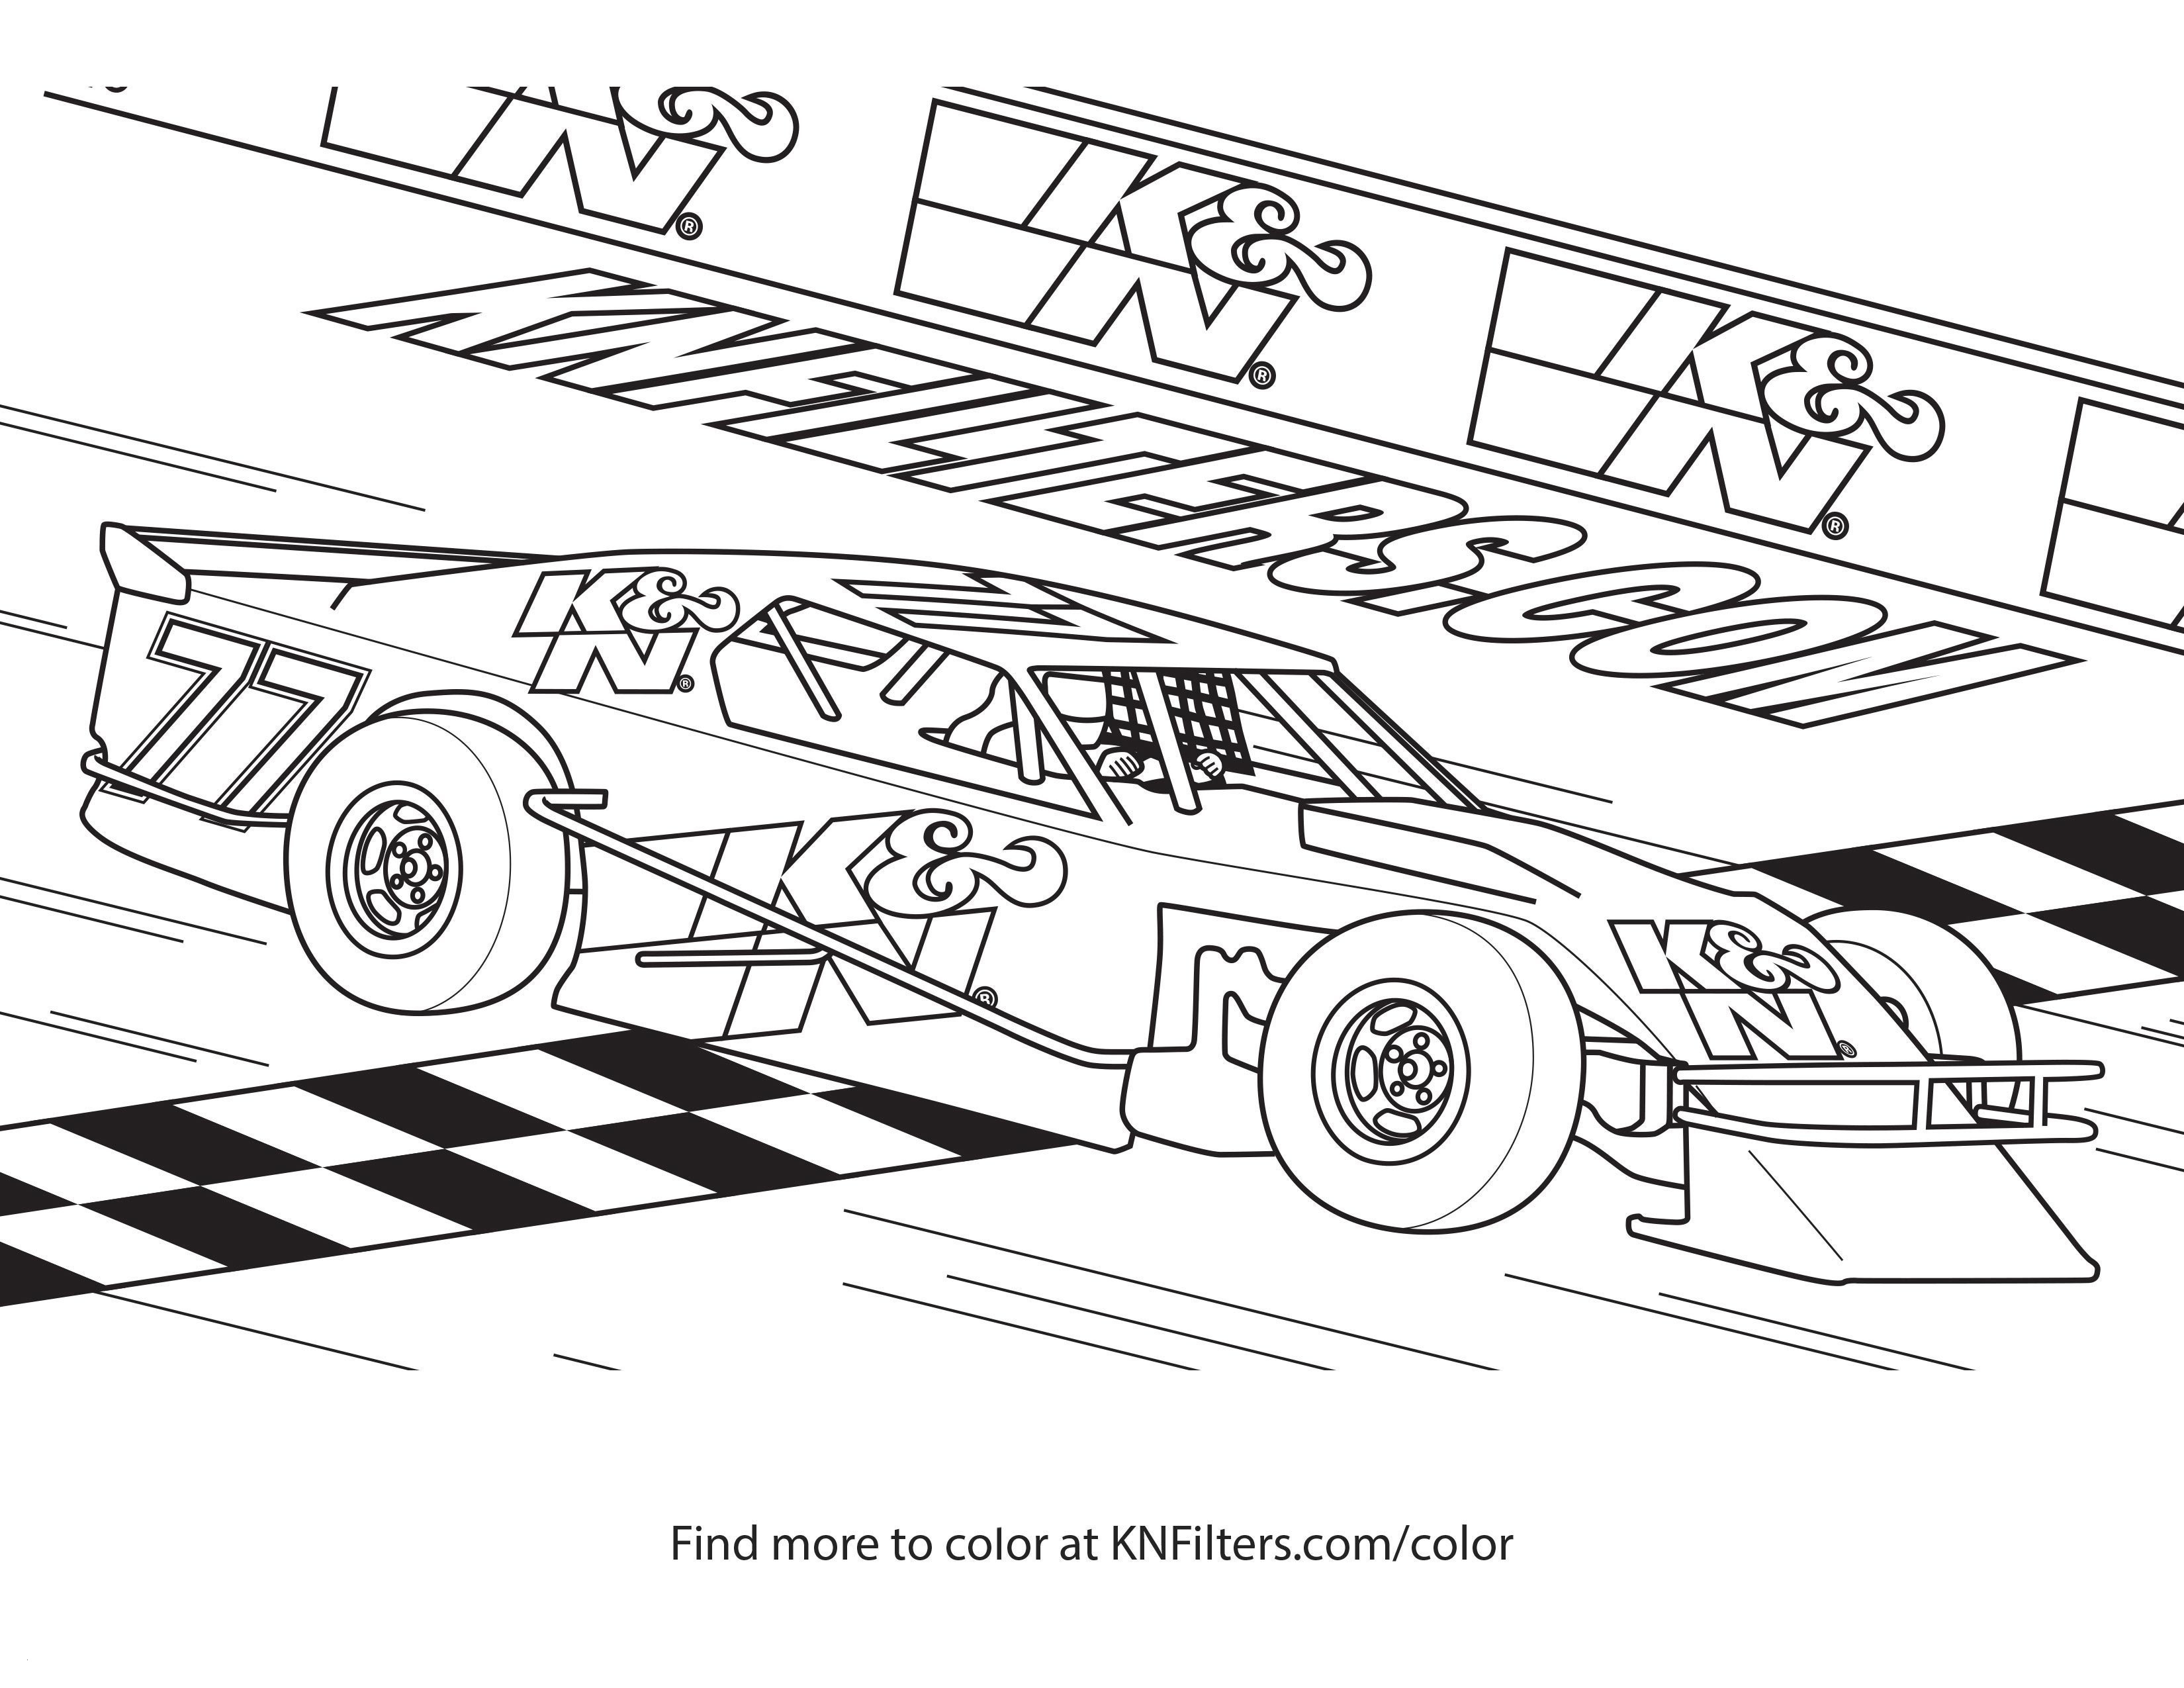 cool car coloring pages Download-Race Car Coloring Page 3-l